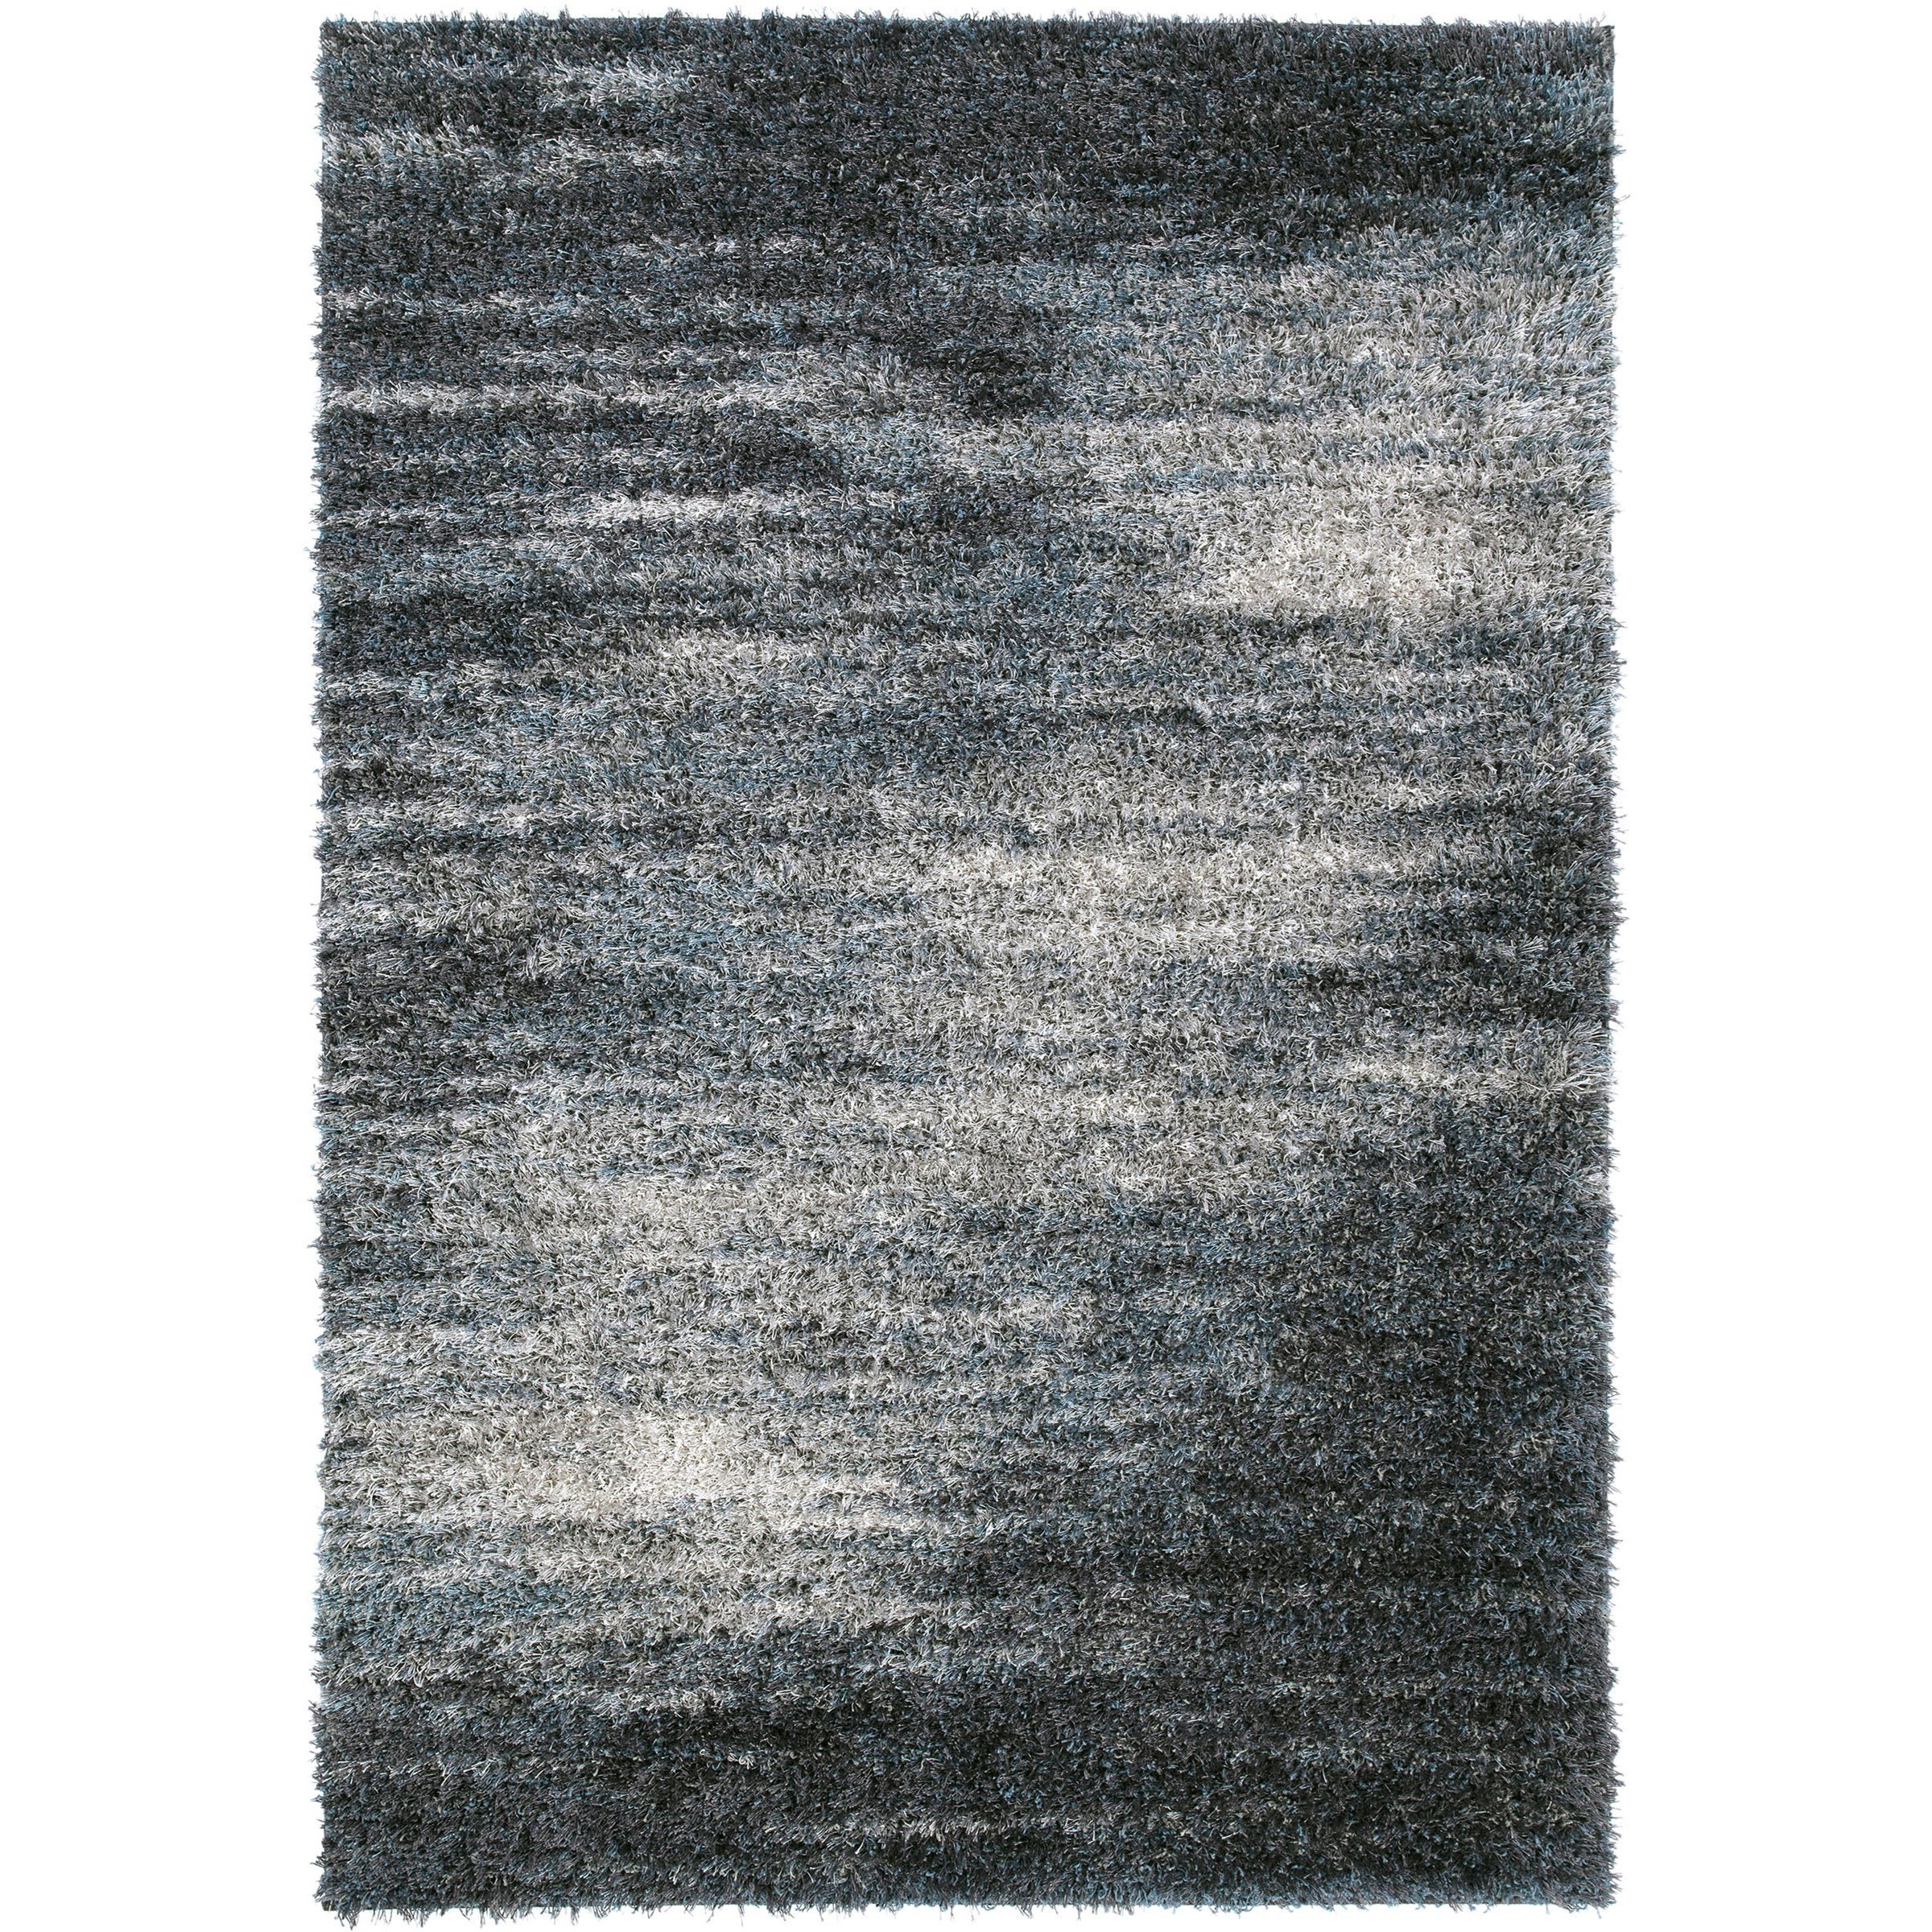 """Arturro Charcoal 9'6""""X13'2"""" Rug by Dalyn at Fashion Furniture"""